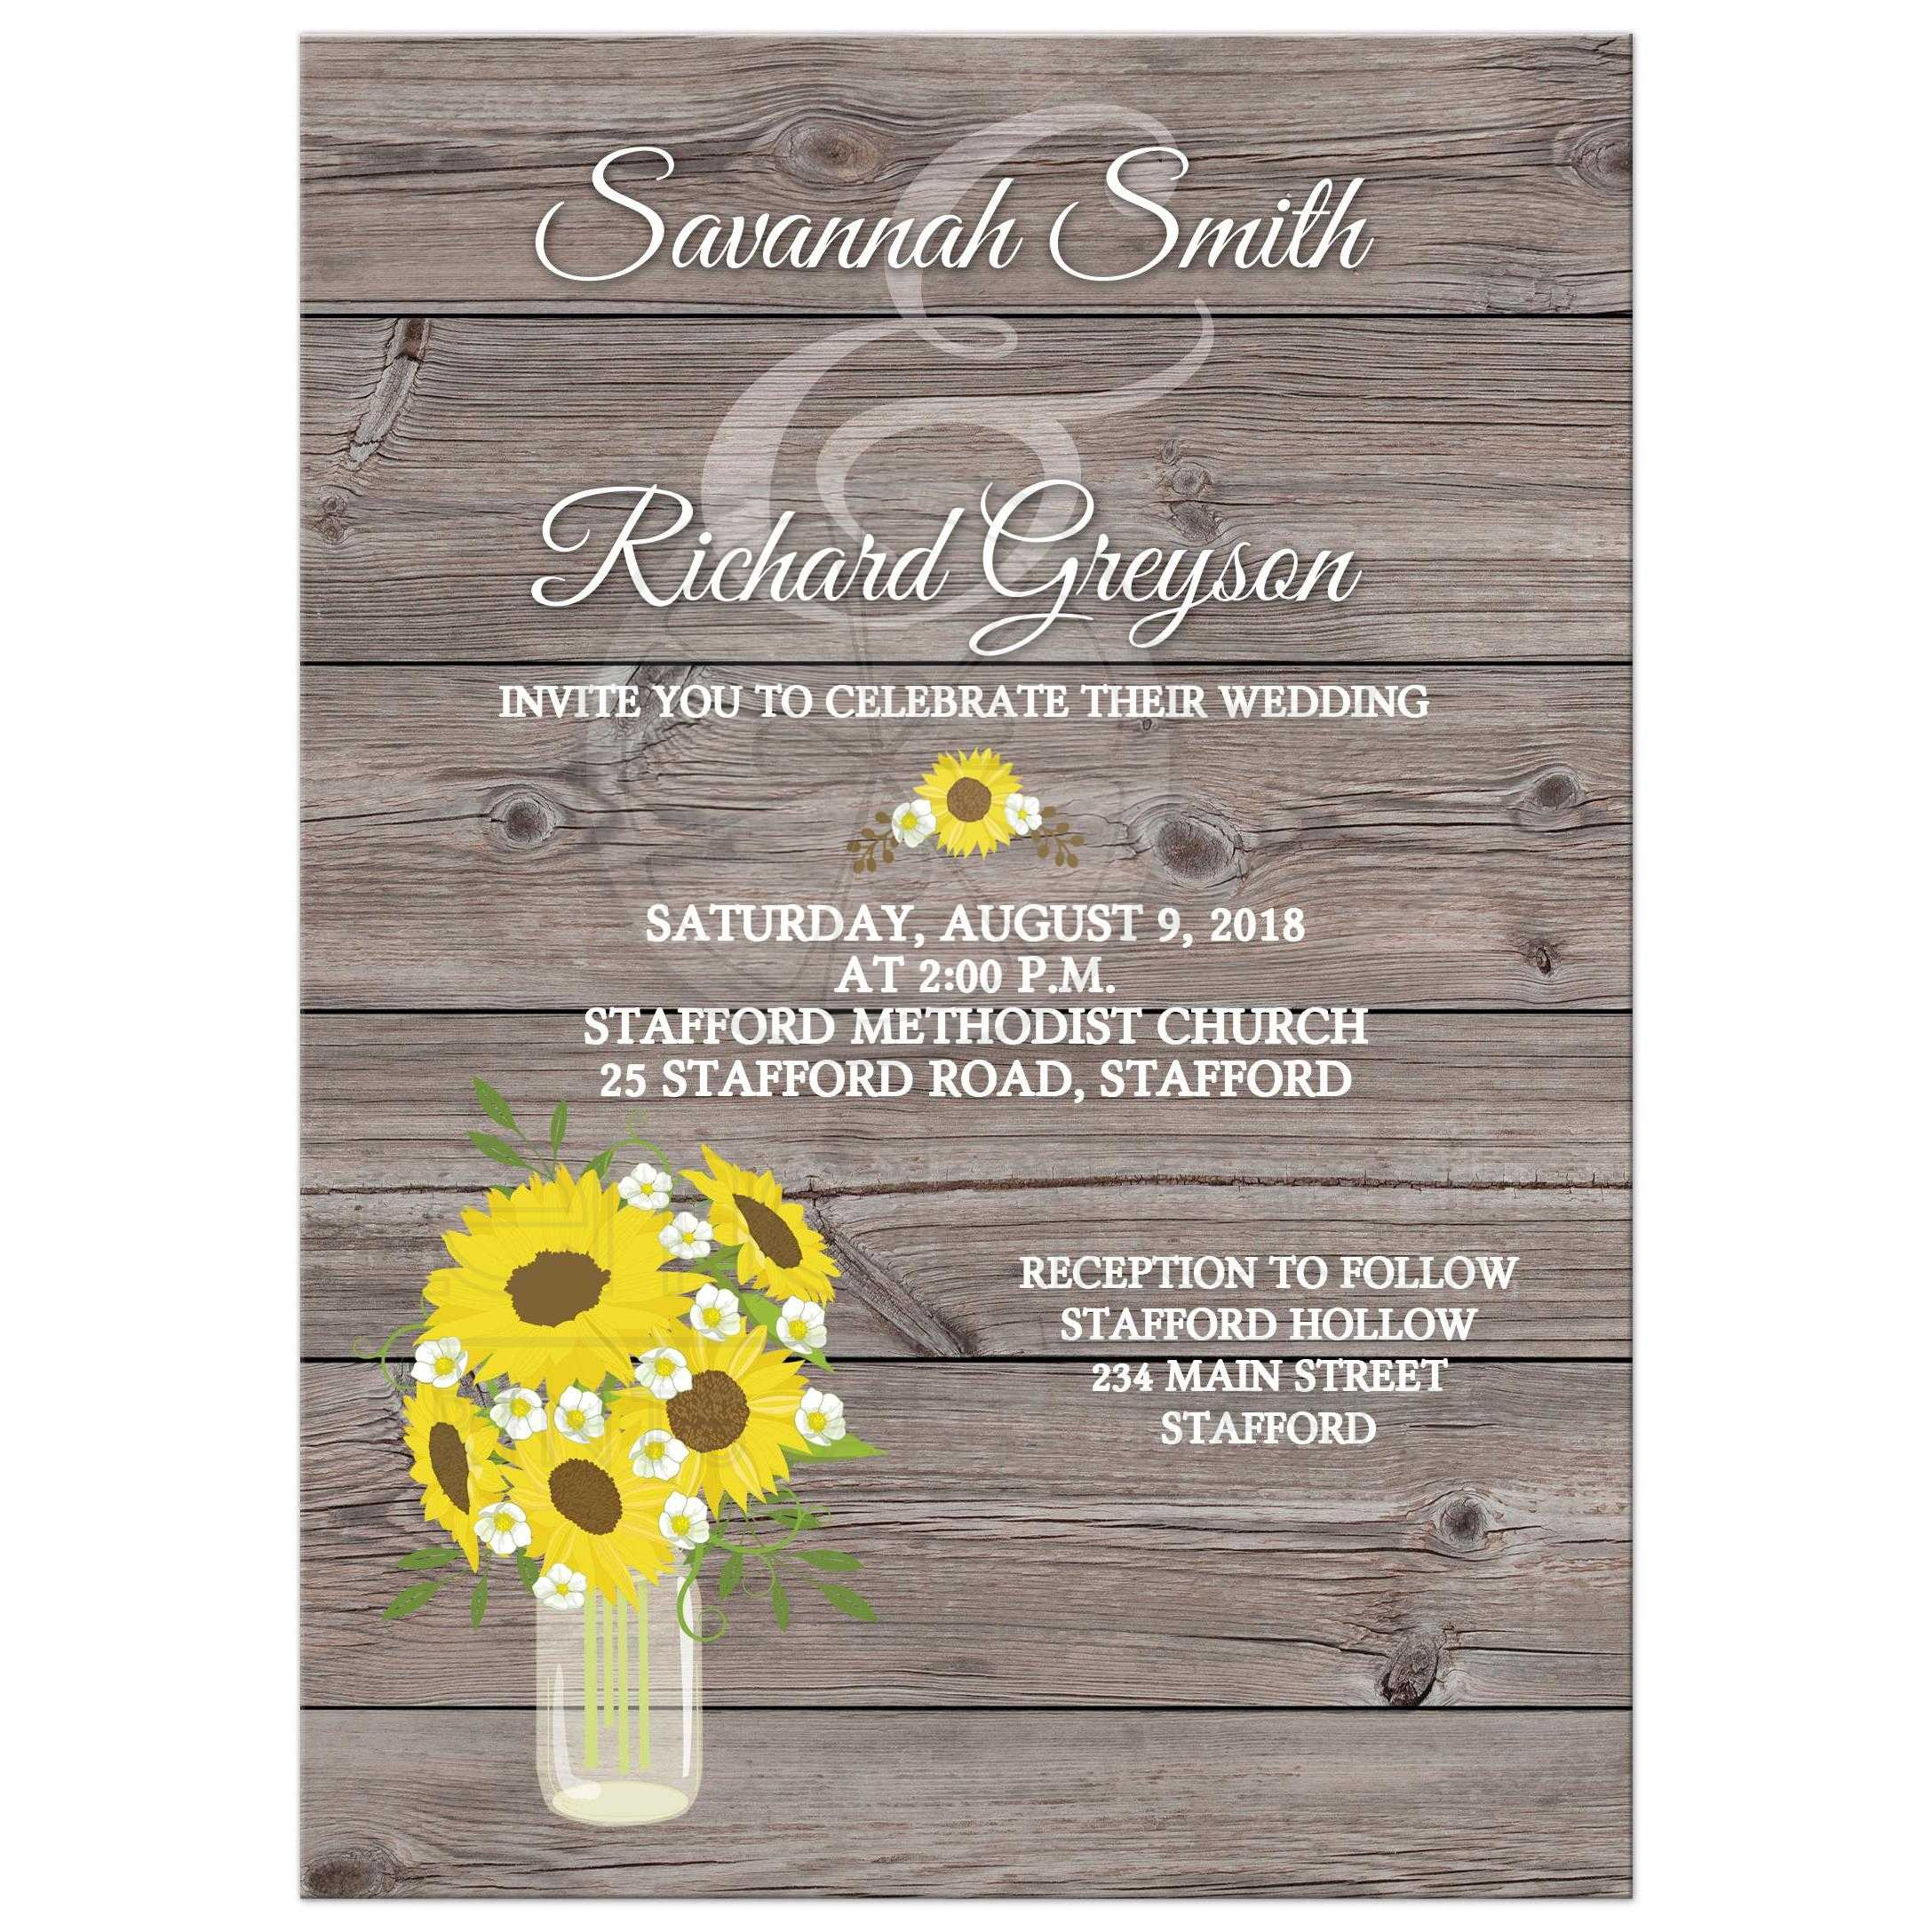 Sunflower In Mason Jar Barn Wood Wedding Invitations